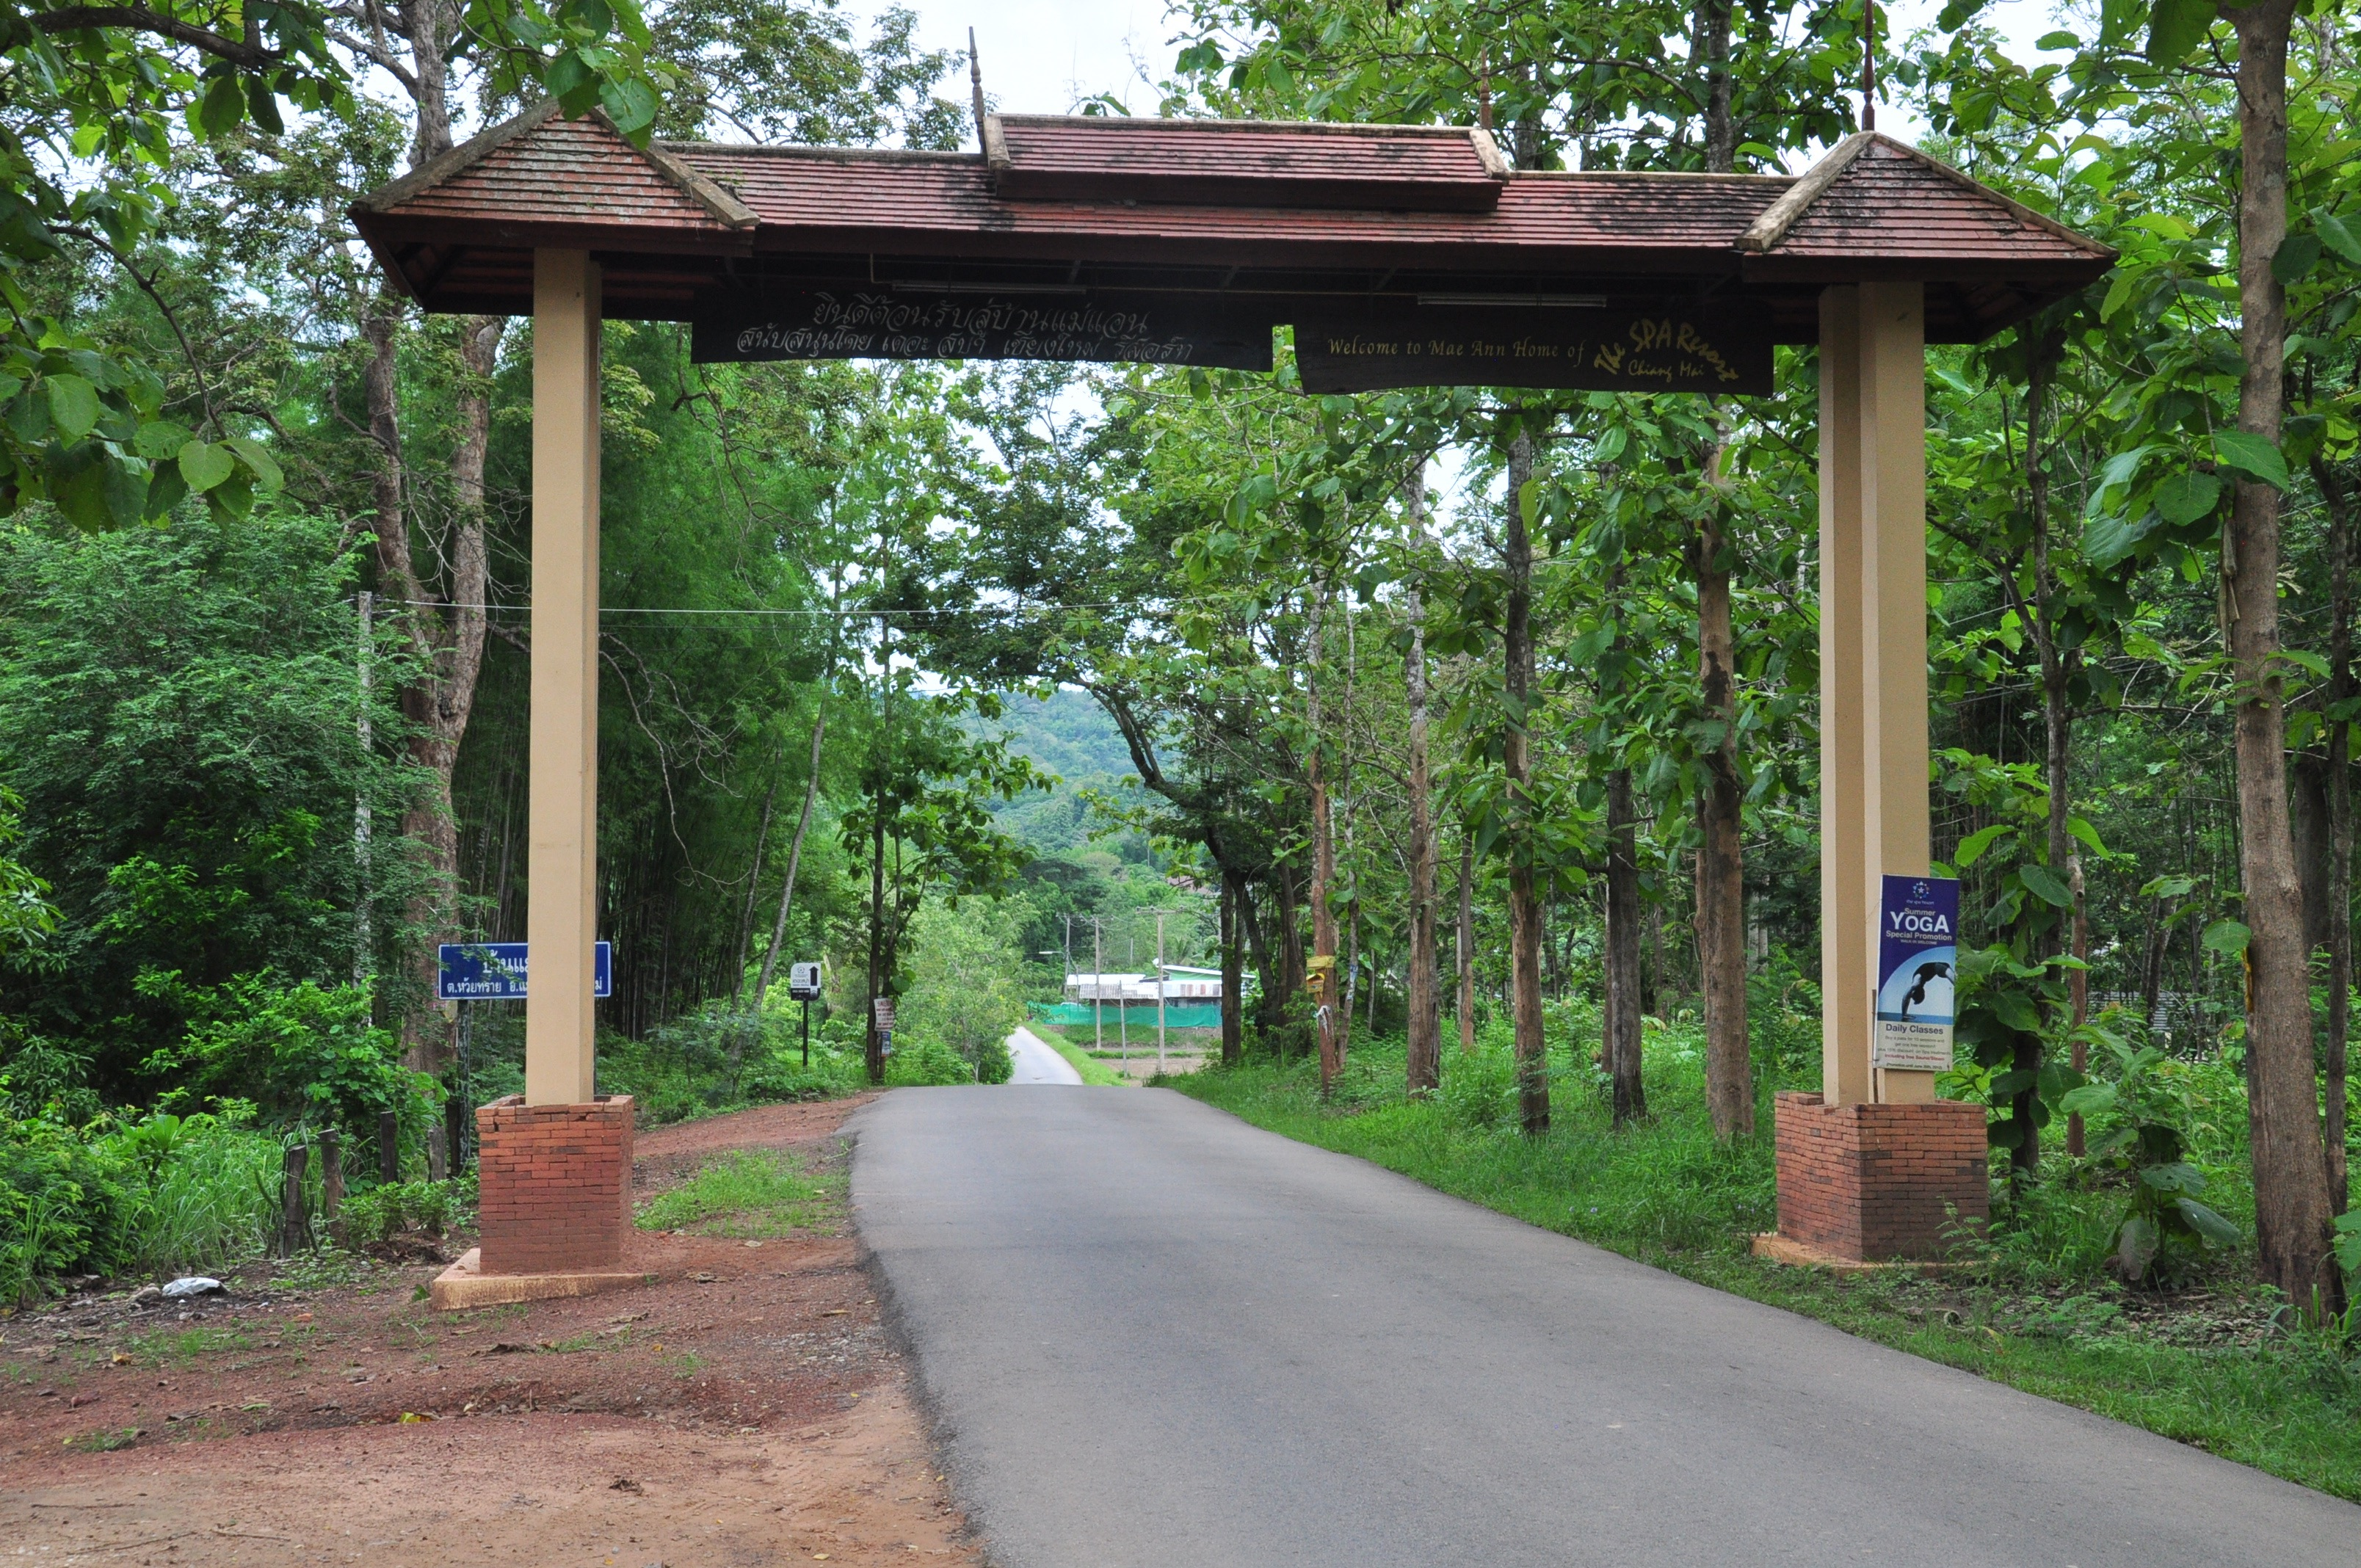 The entrance to our village